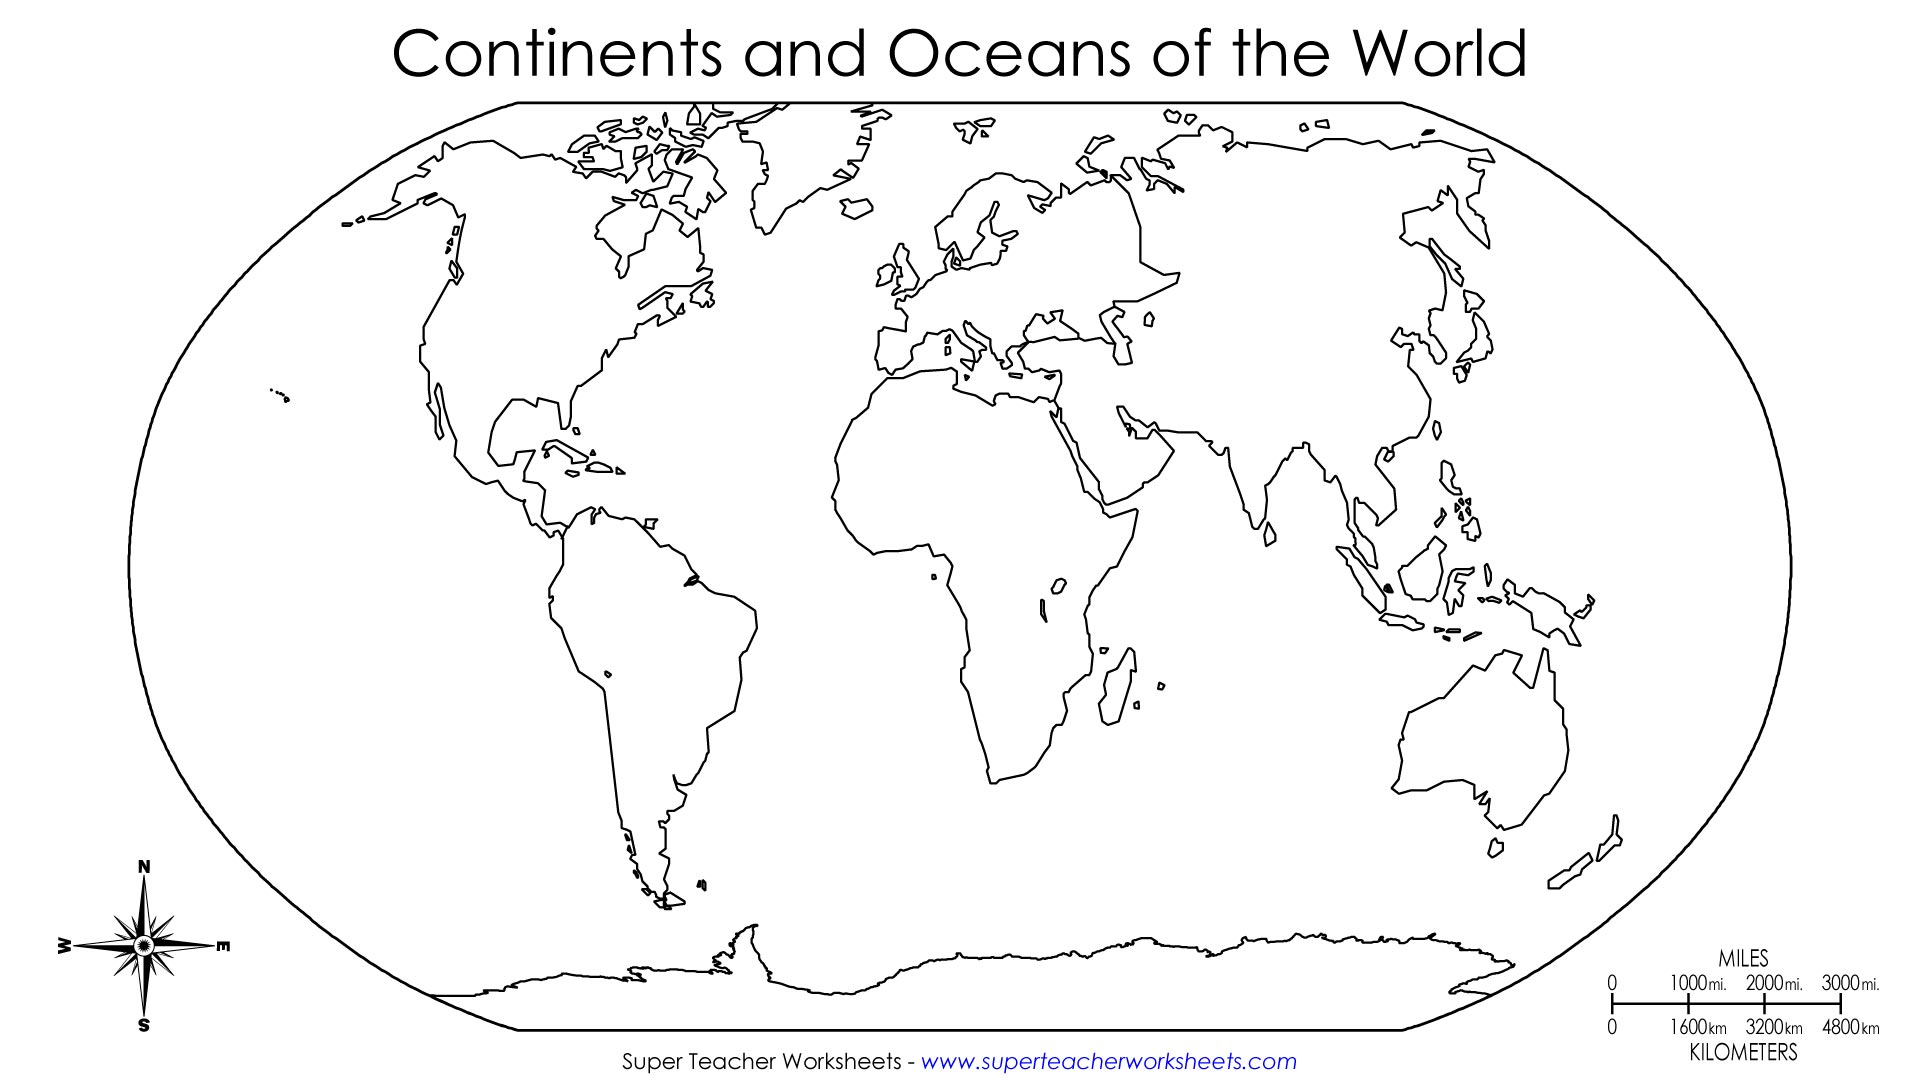 Blank World Map Continents And Oceans | White Gold